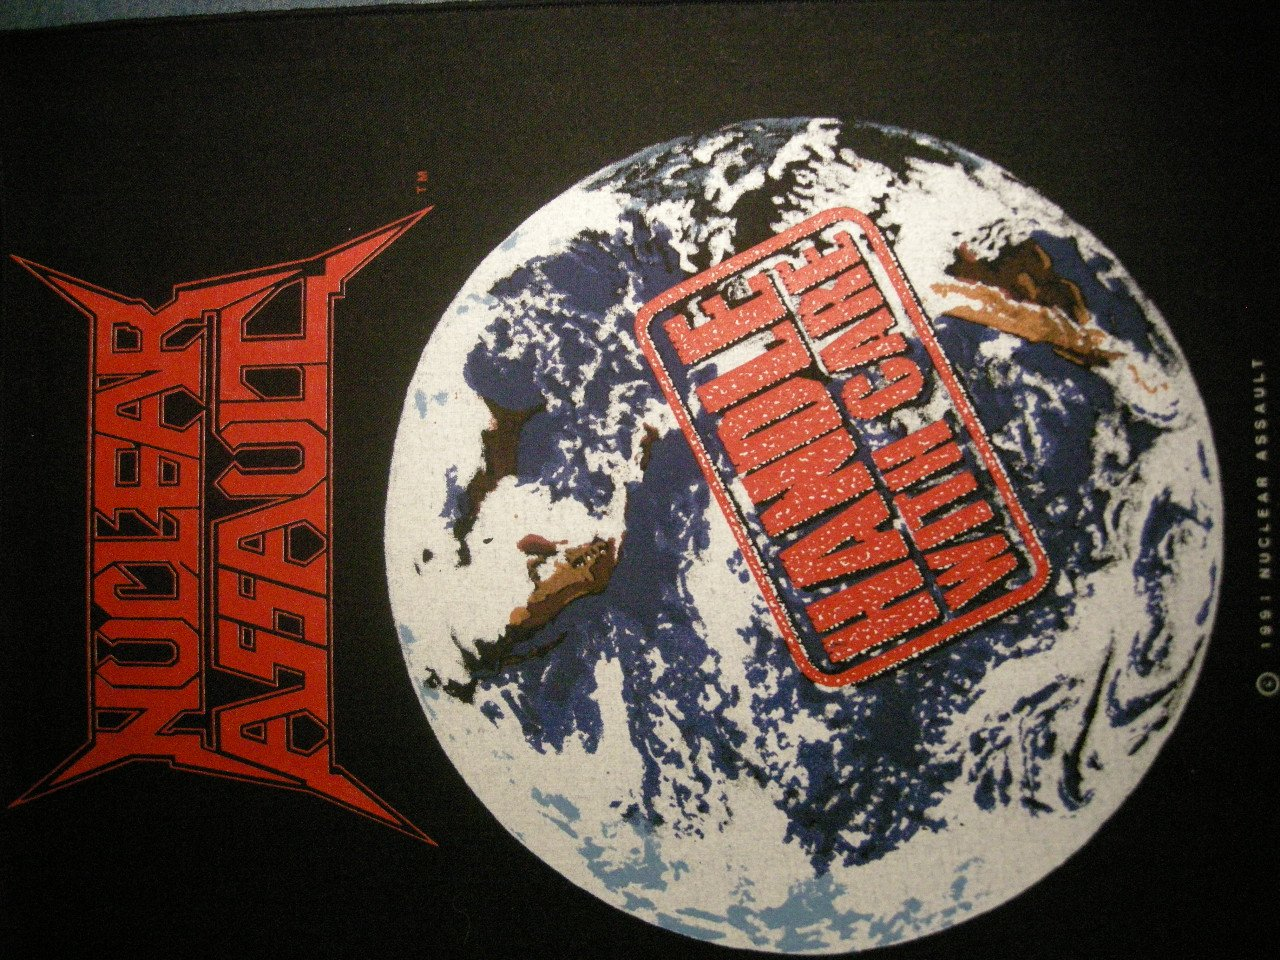 NUCLEAR ASSAULT BACKPATCH Handle With Care patch IMPORT